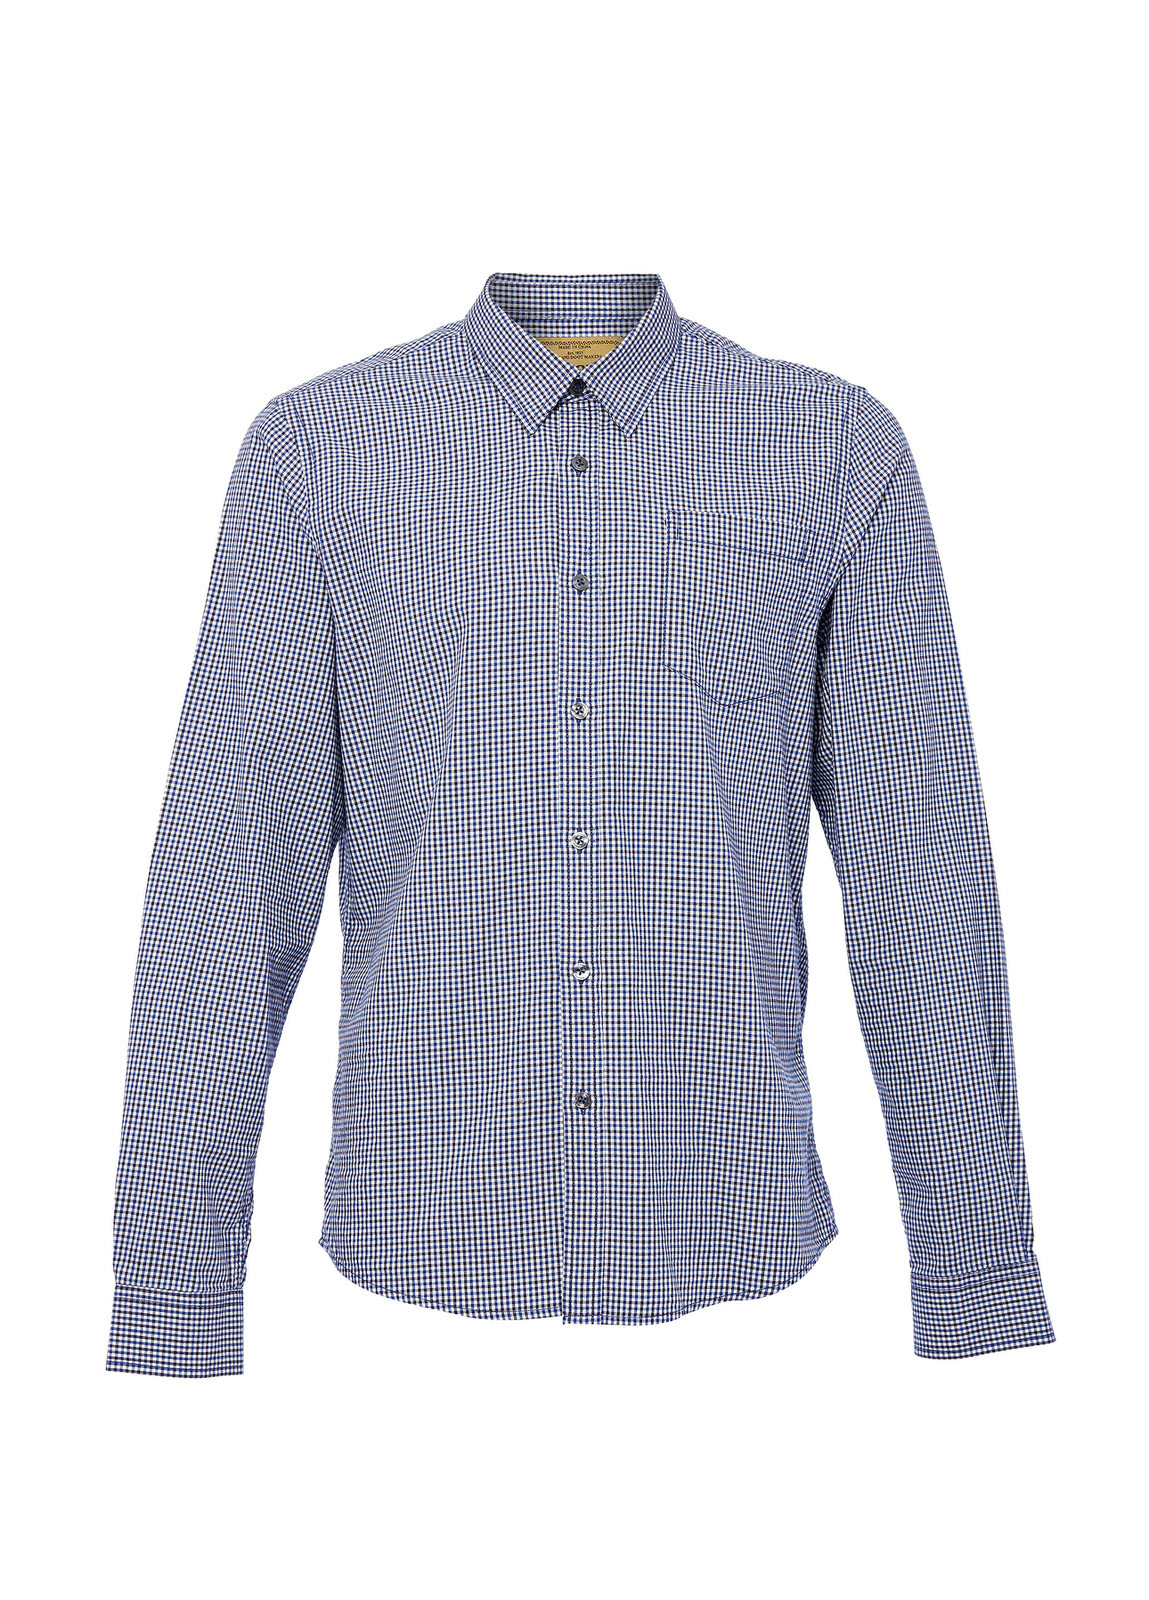 Celbridge_Shirt_Navy_Image_1